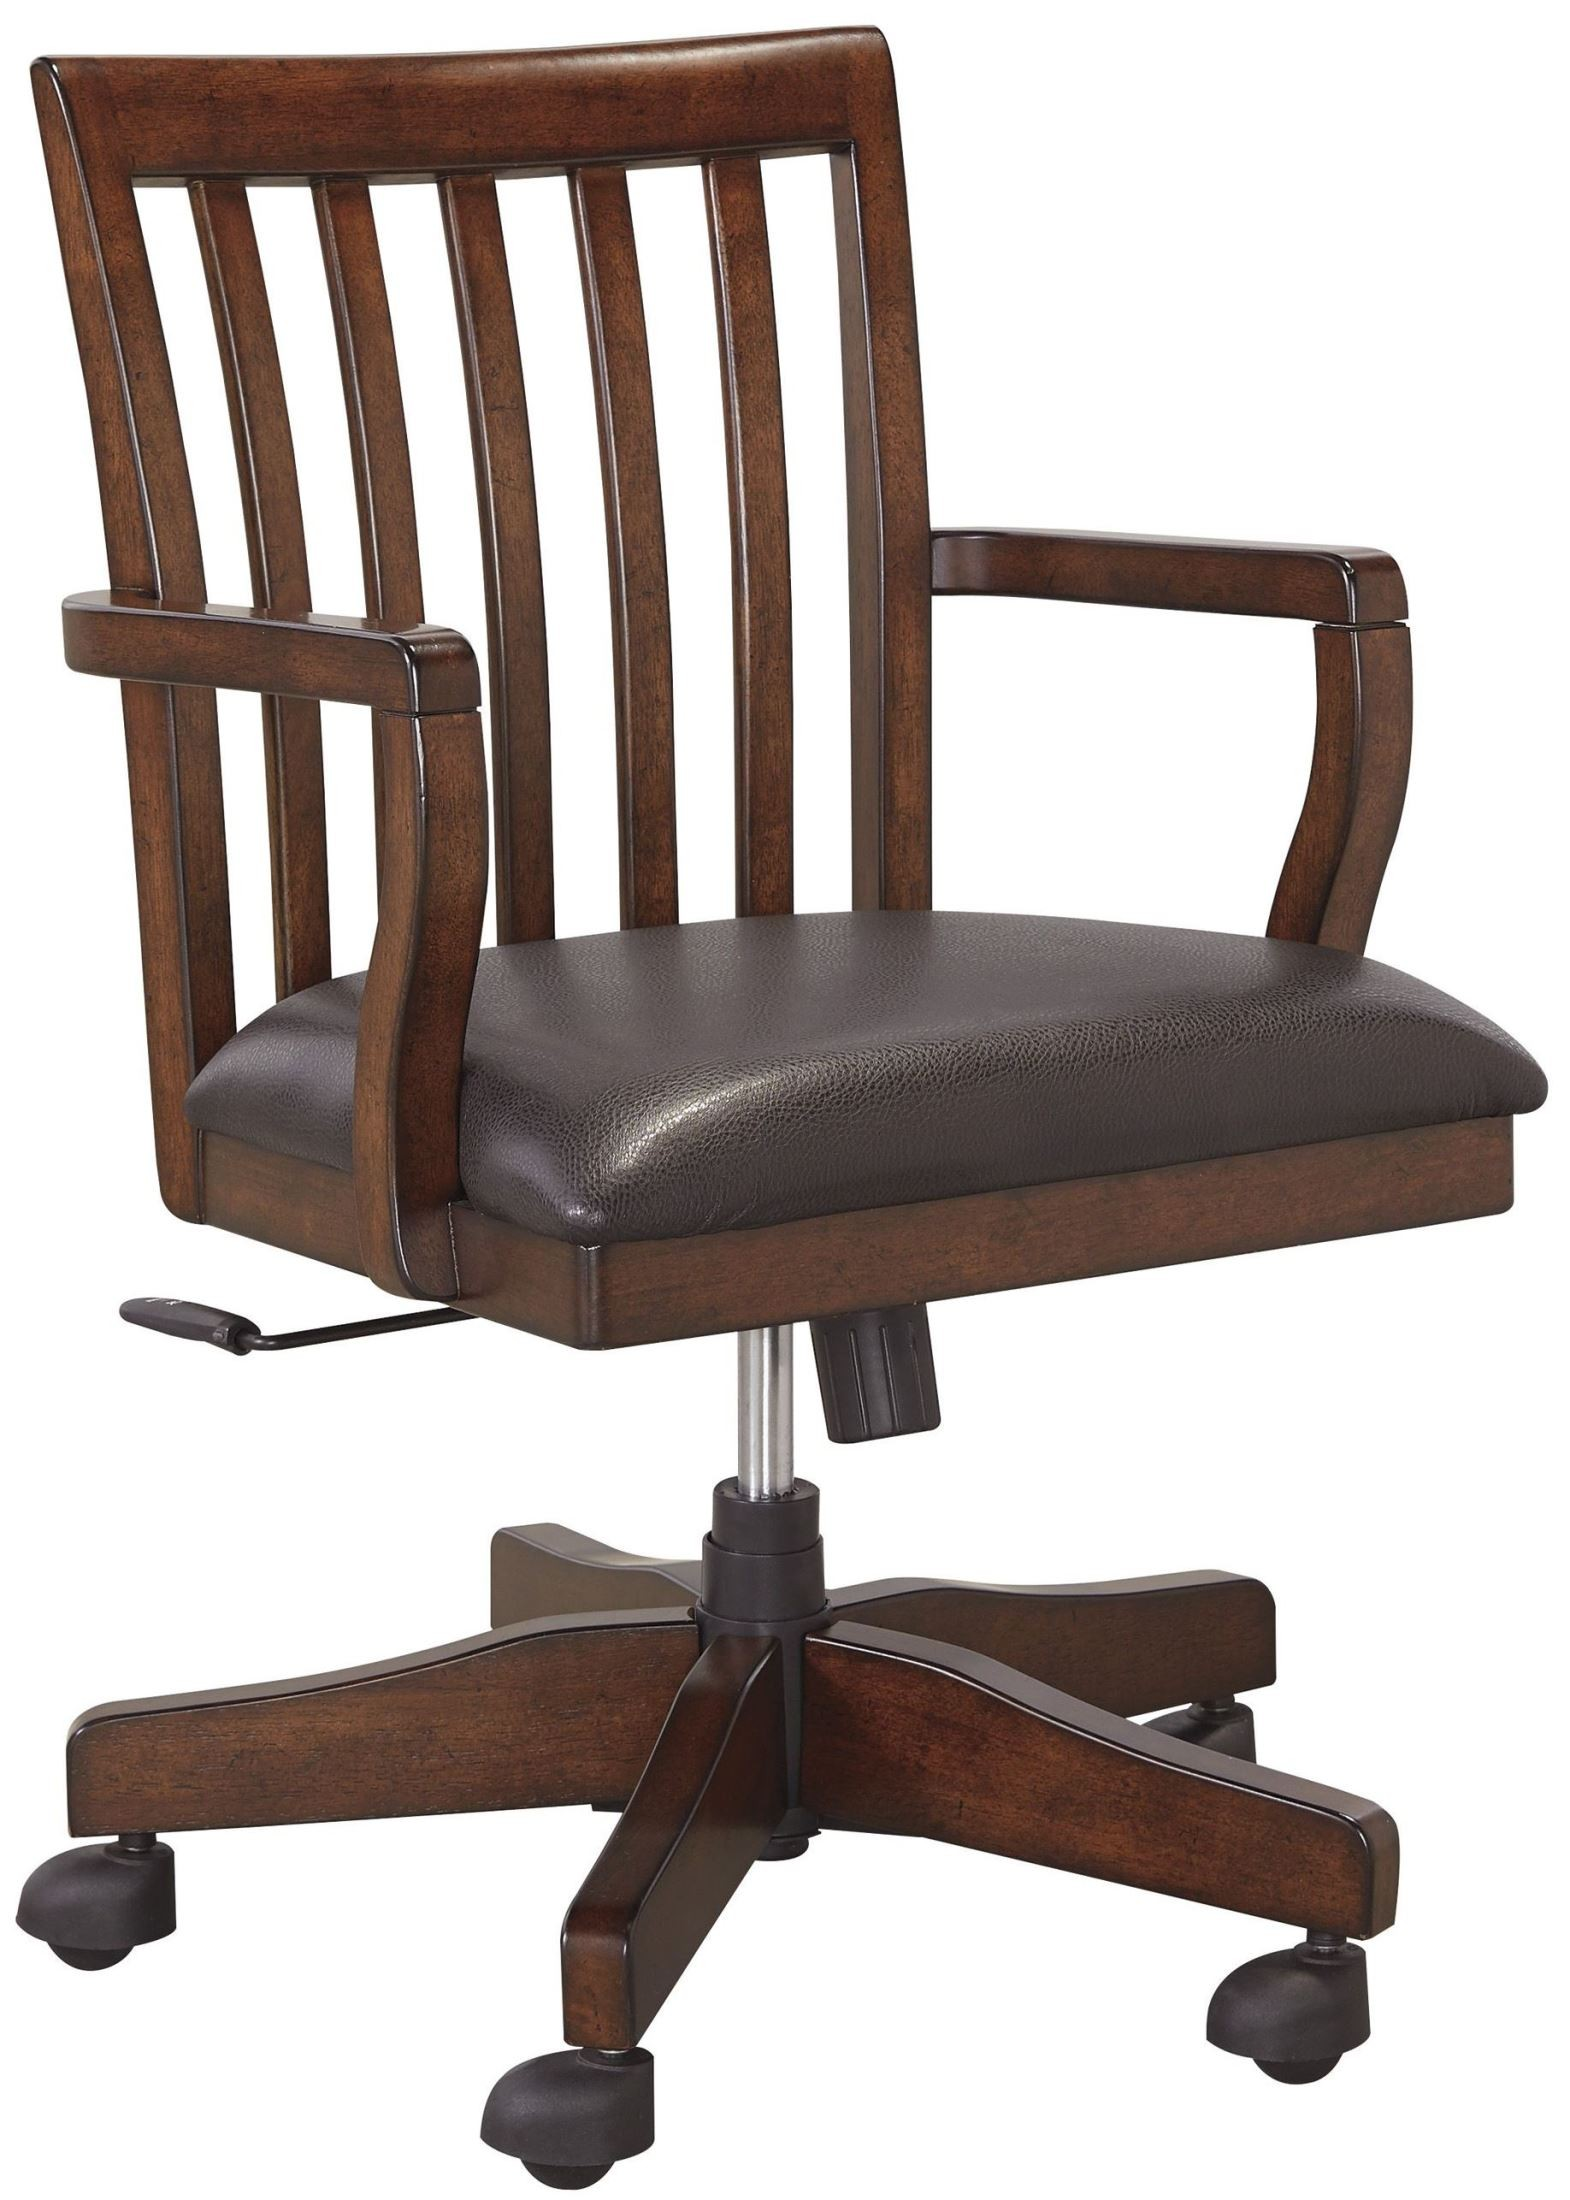 swivel chair brown party decorations covers wassner dark home office desk from